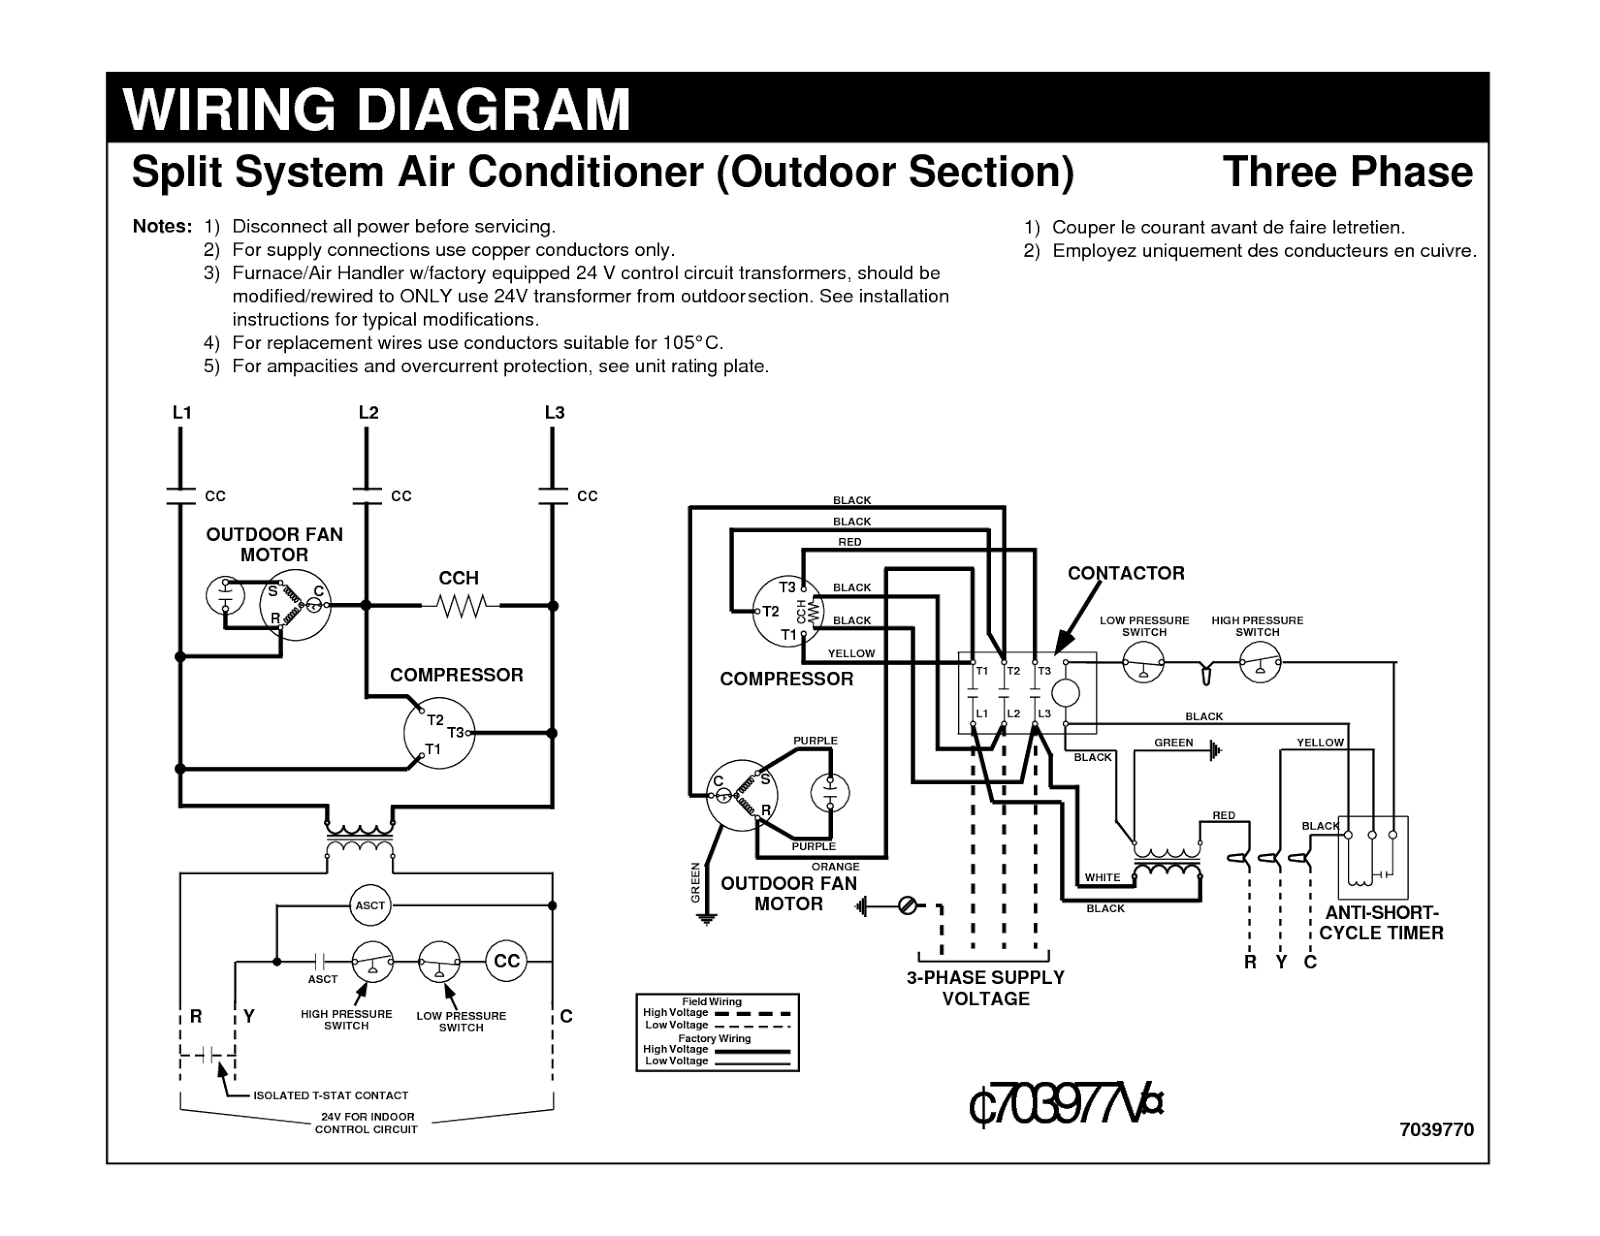 New House Wiring Diagram South Africa Diagram Diagramsample